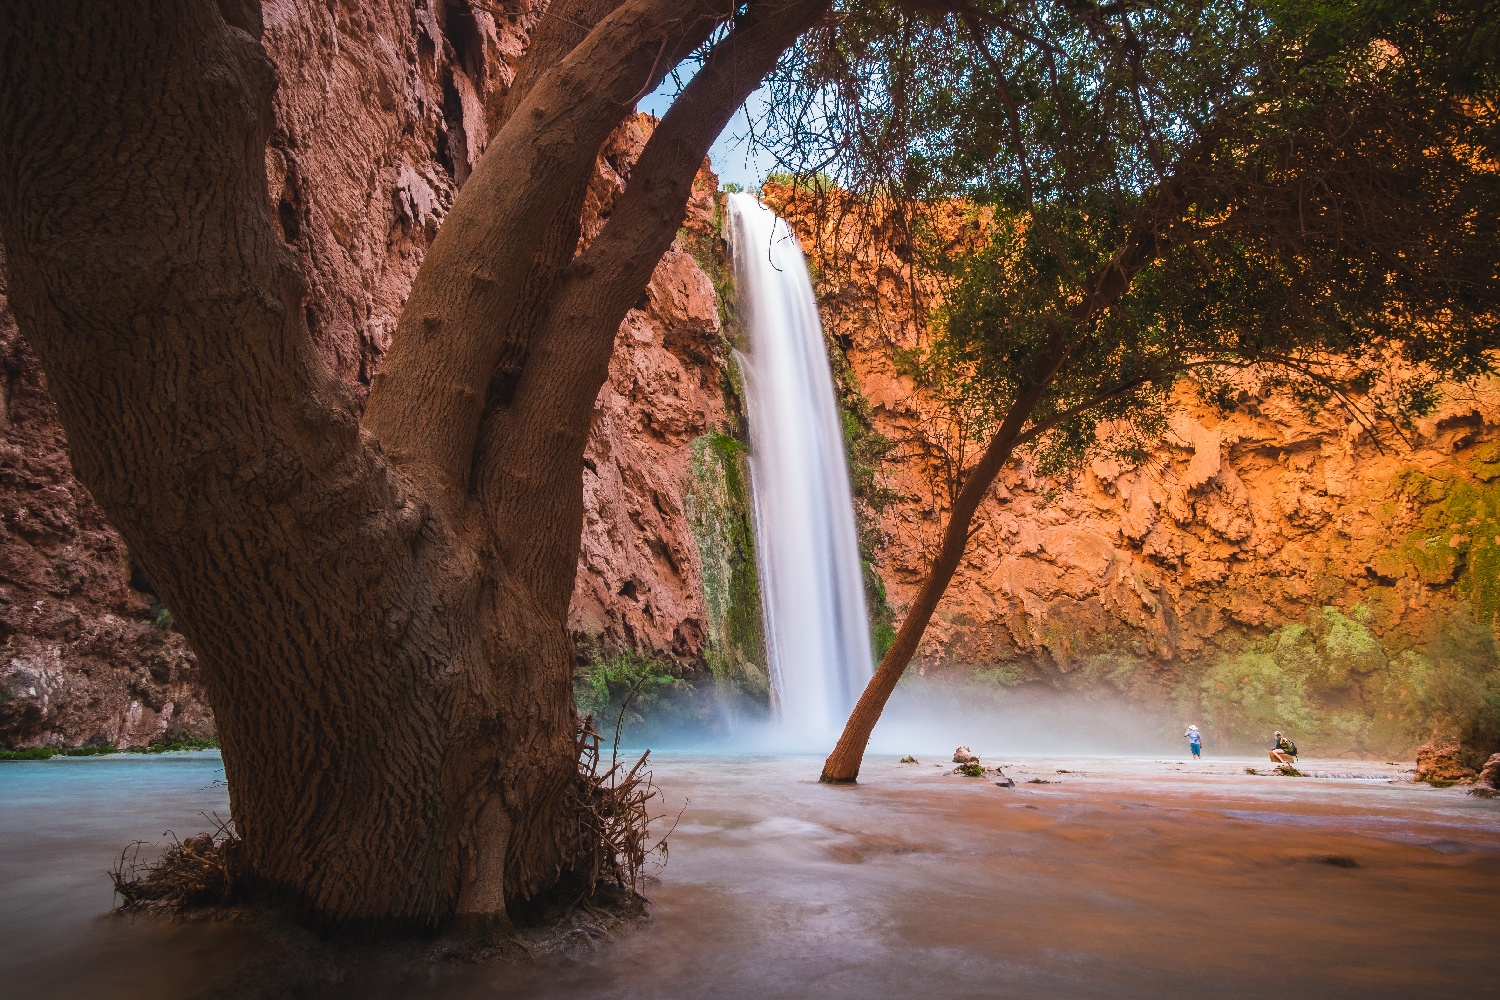 havasupai grand canyon day trip driving from las vegas, nevada